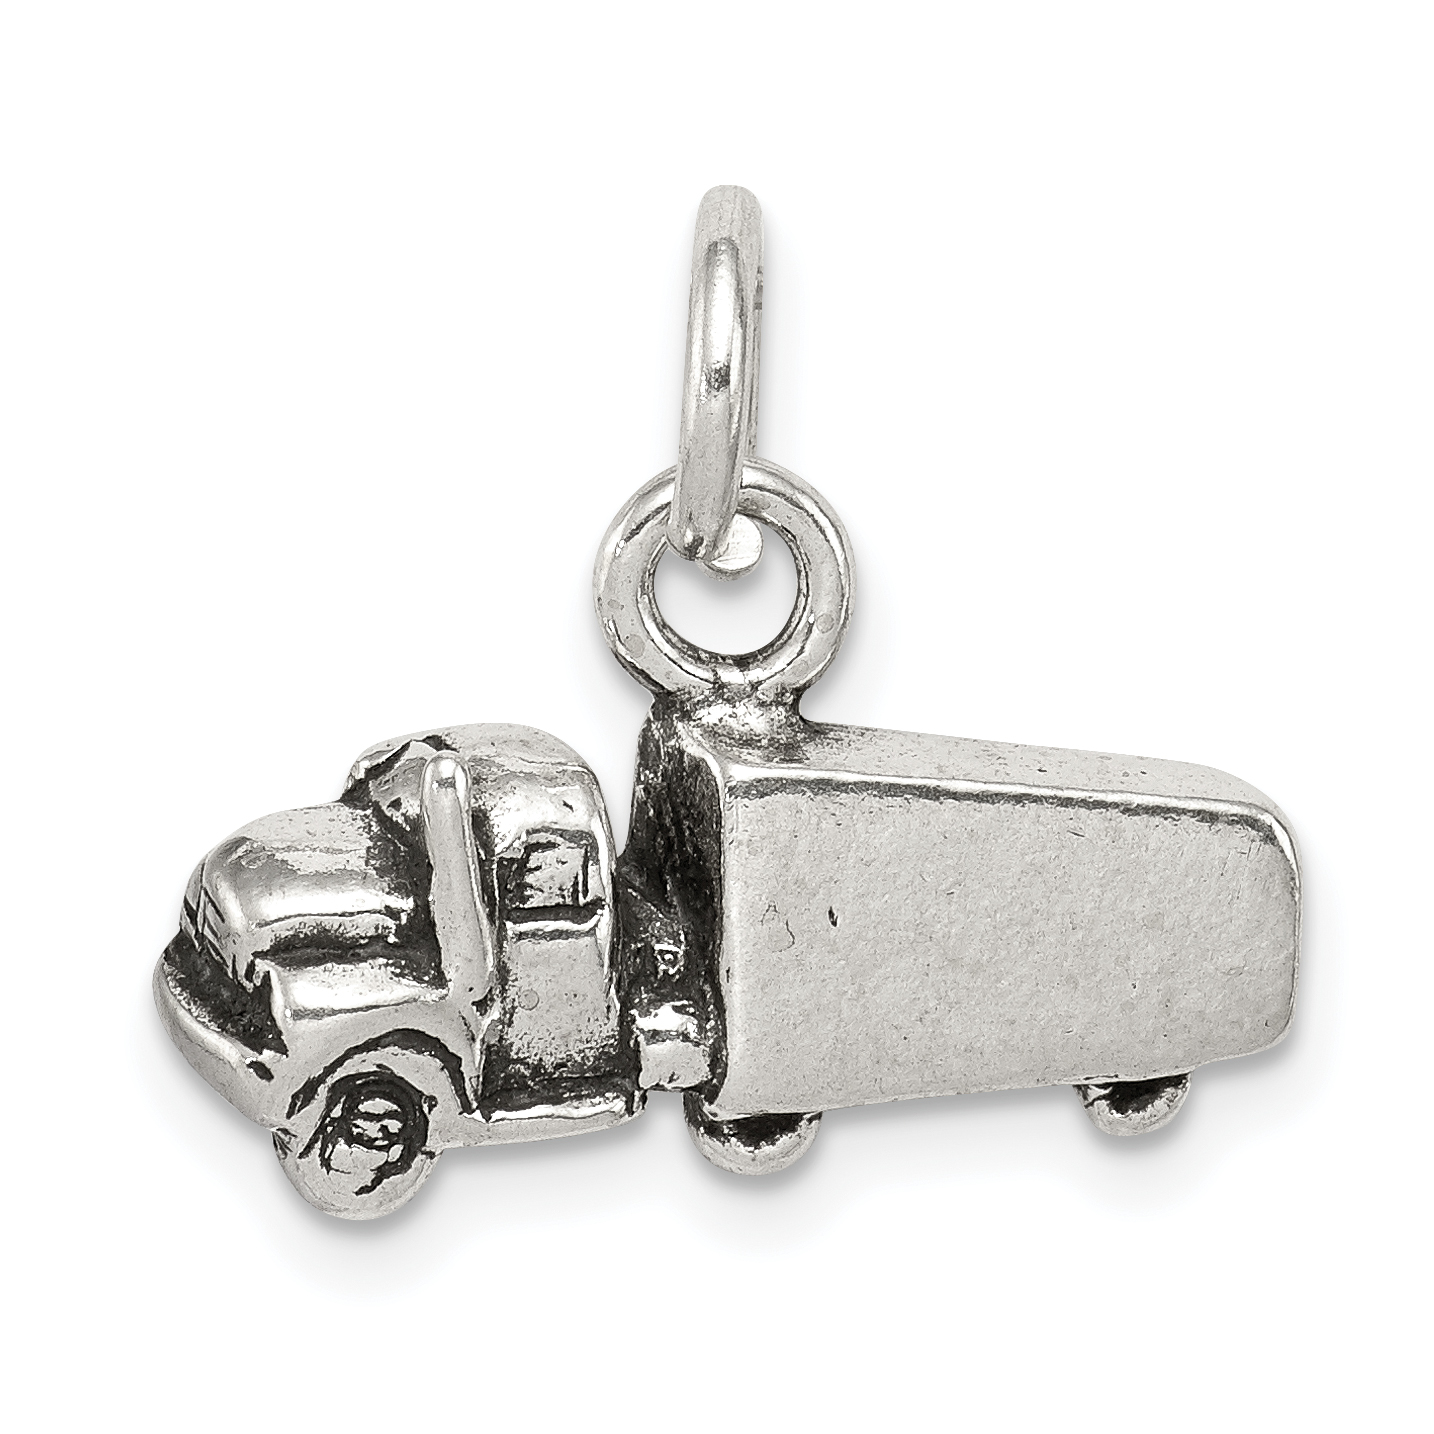 925 Sterling Silver Truck Pendant Charm Necklace Travel Transportation Fine Jewelry For Women Gift Set